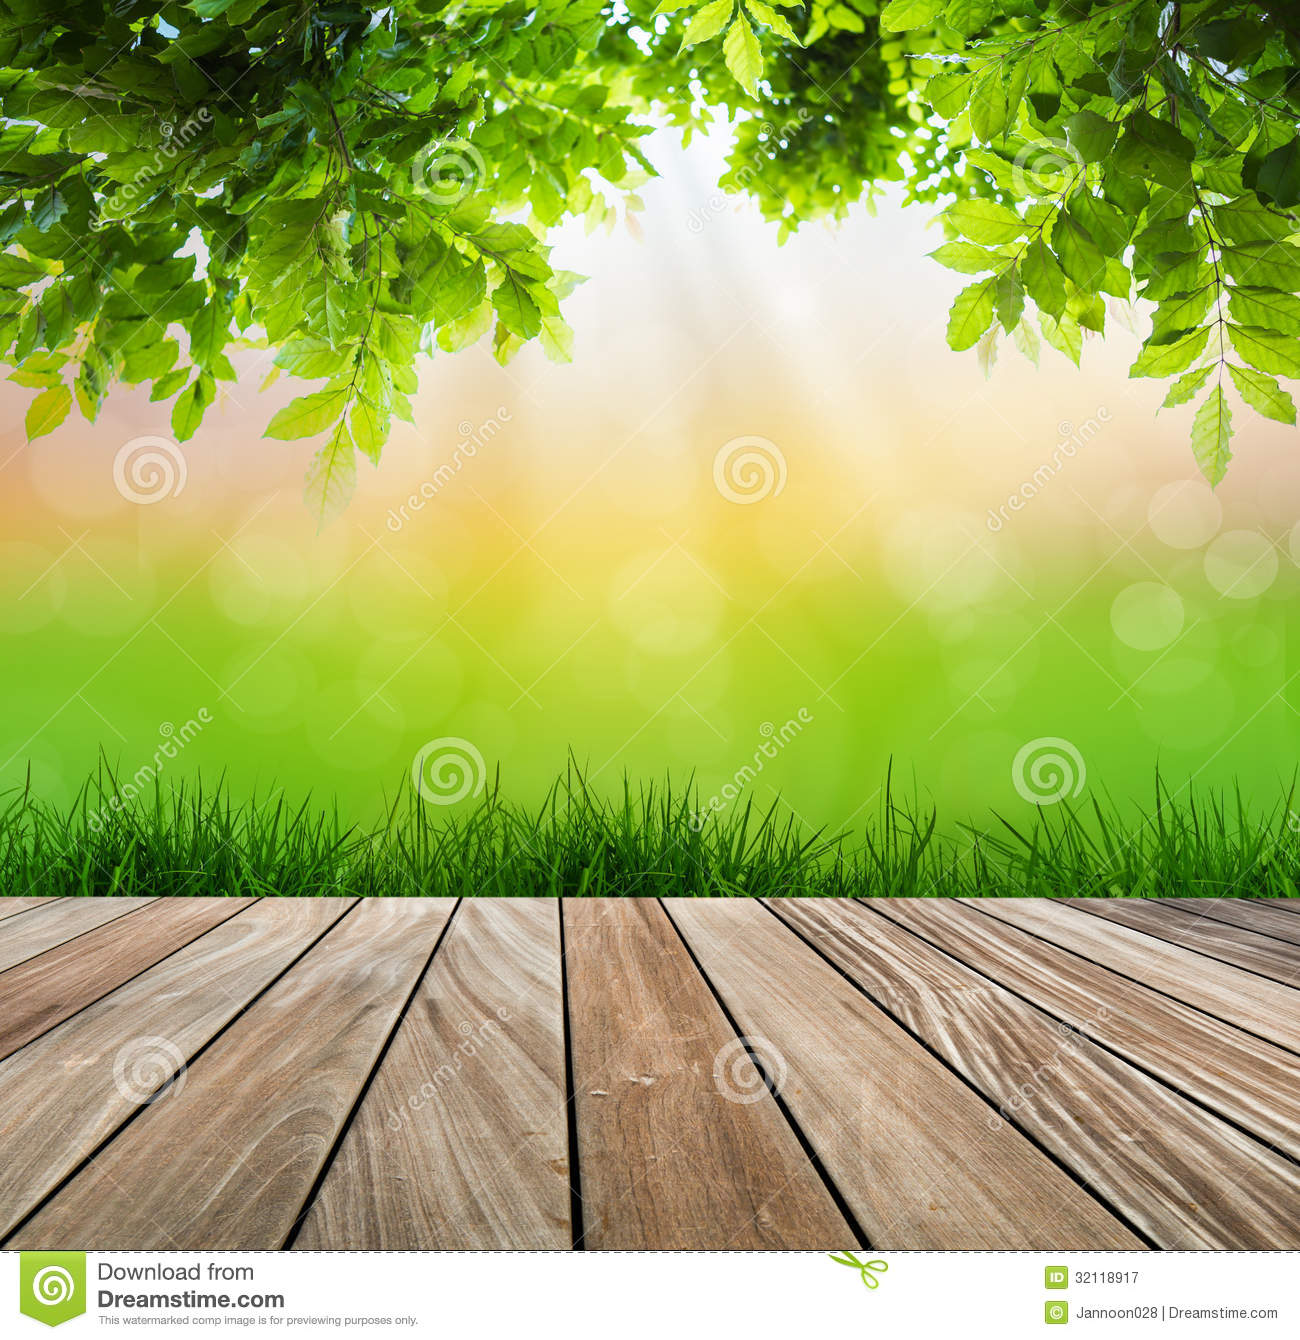 Fresh Spring Green Grass And Wood Floor With Green Leaf. Royalty Free ...